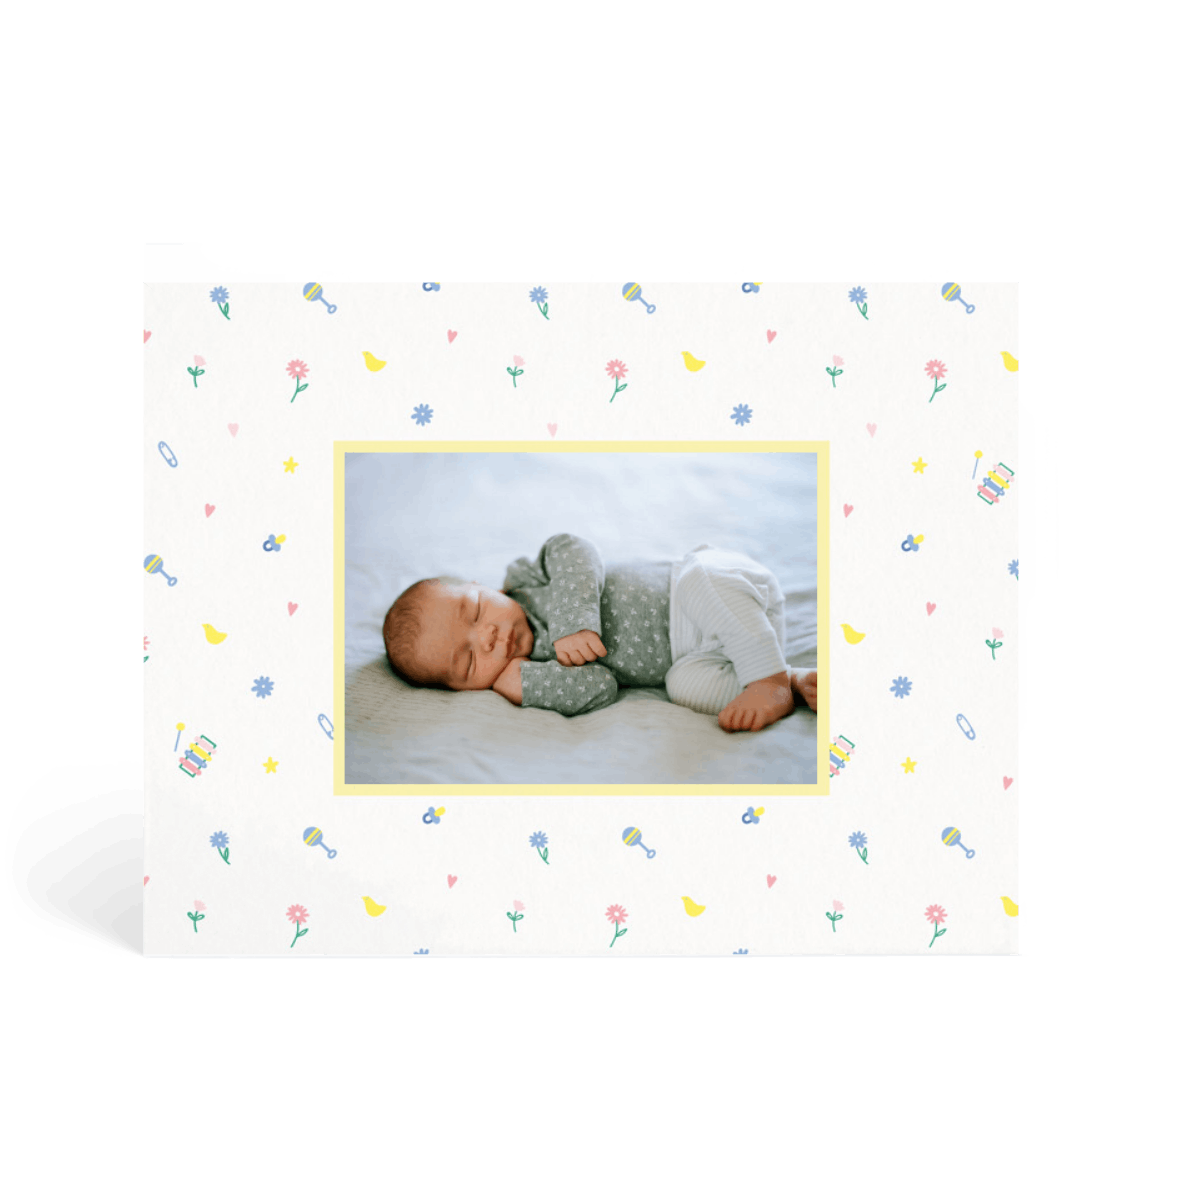 Https%3a%2f%2fwww.papier.com%2fproduct image%2f46495%2f28%2fbaby basics 11466 front 1536670295.png?ixlib=rb 1.1